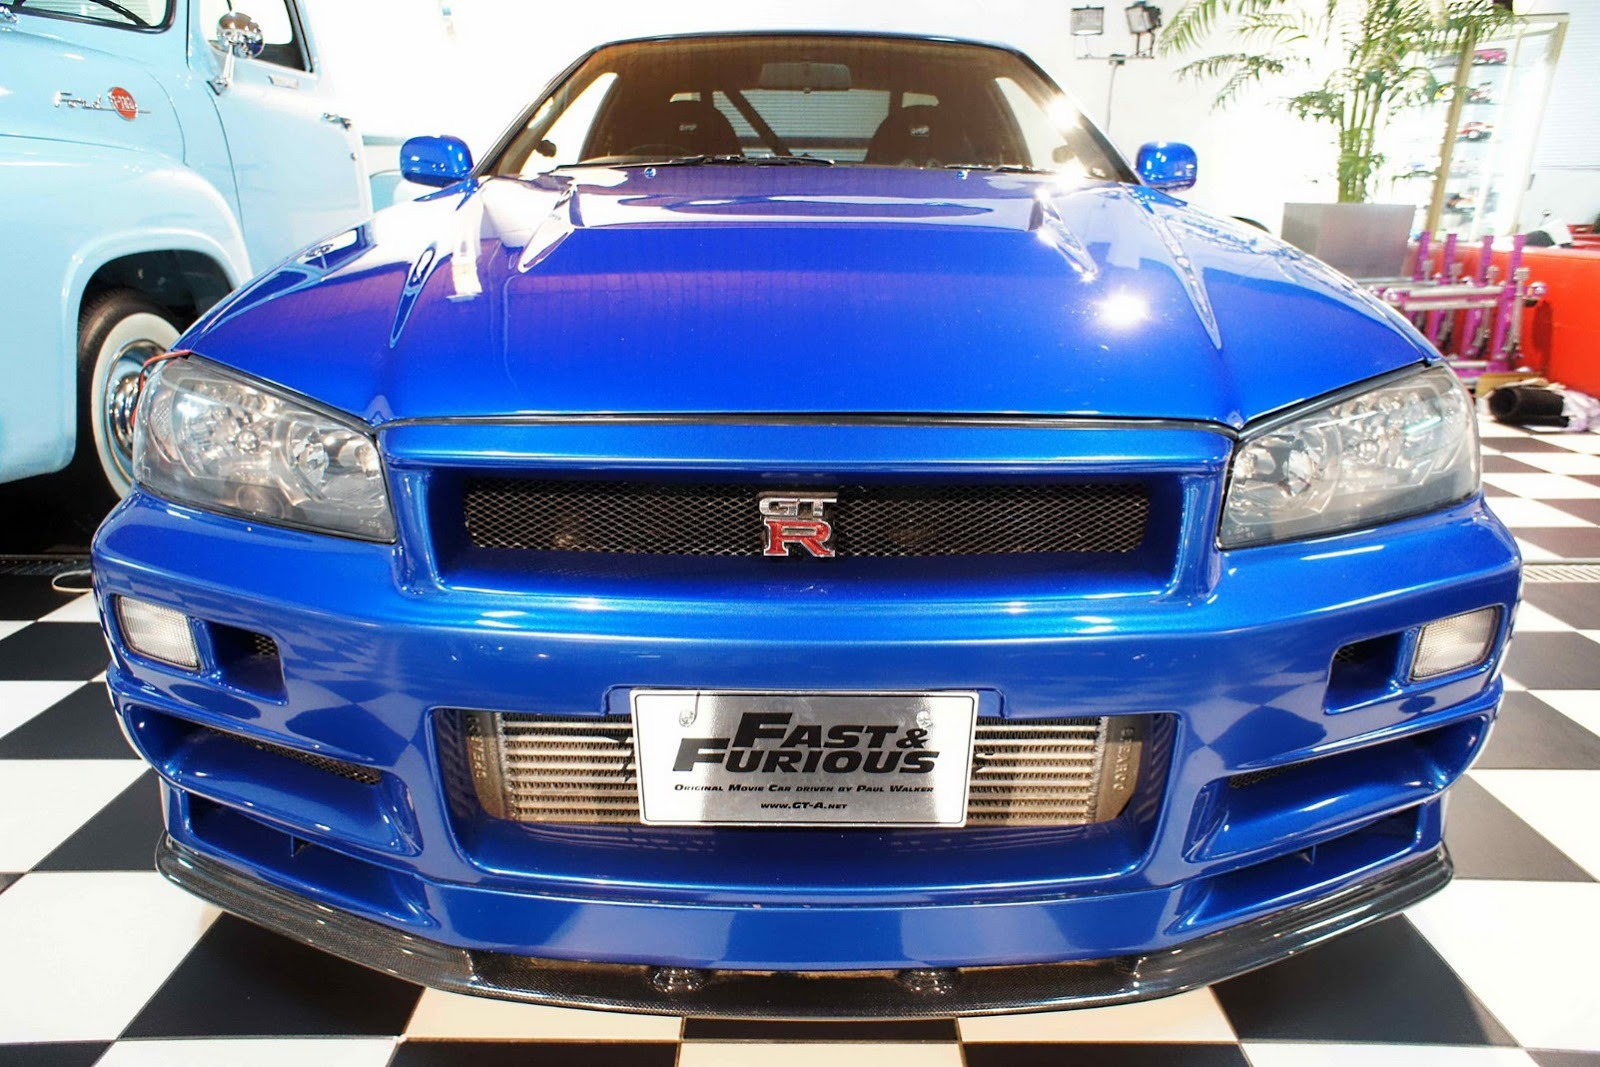 Nissan Cars News Paul Walker S Skyline Gt R For Sale 1m